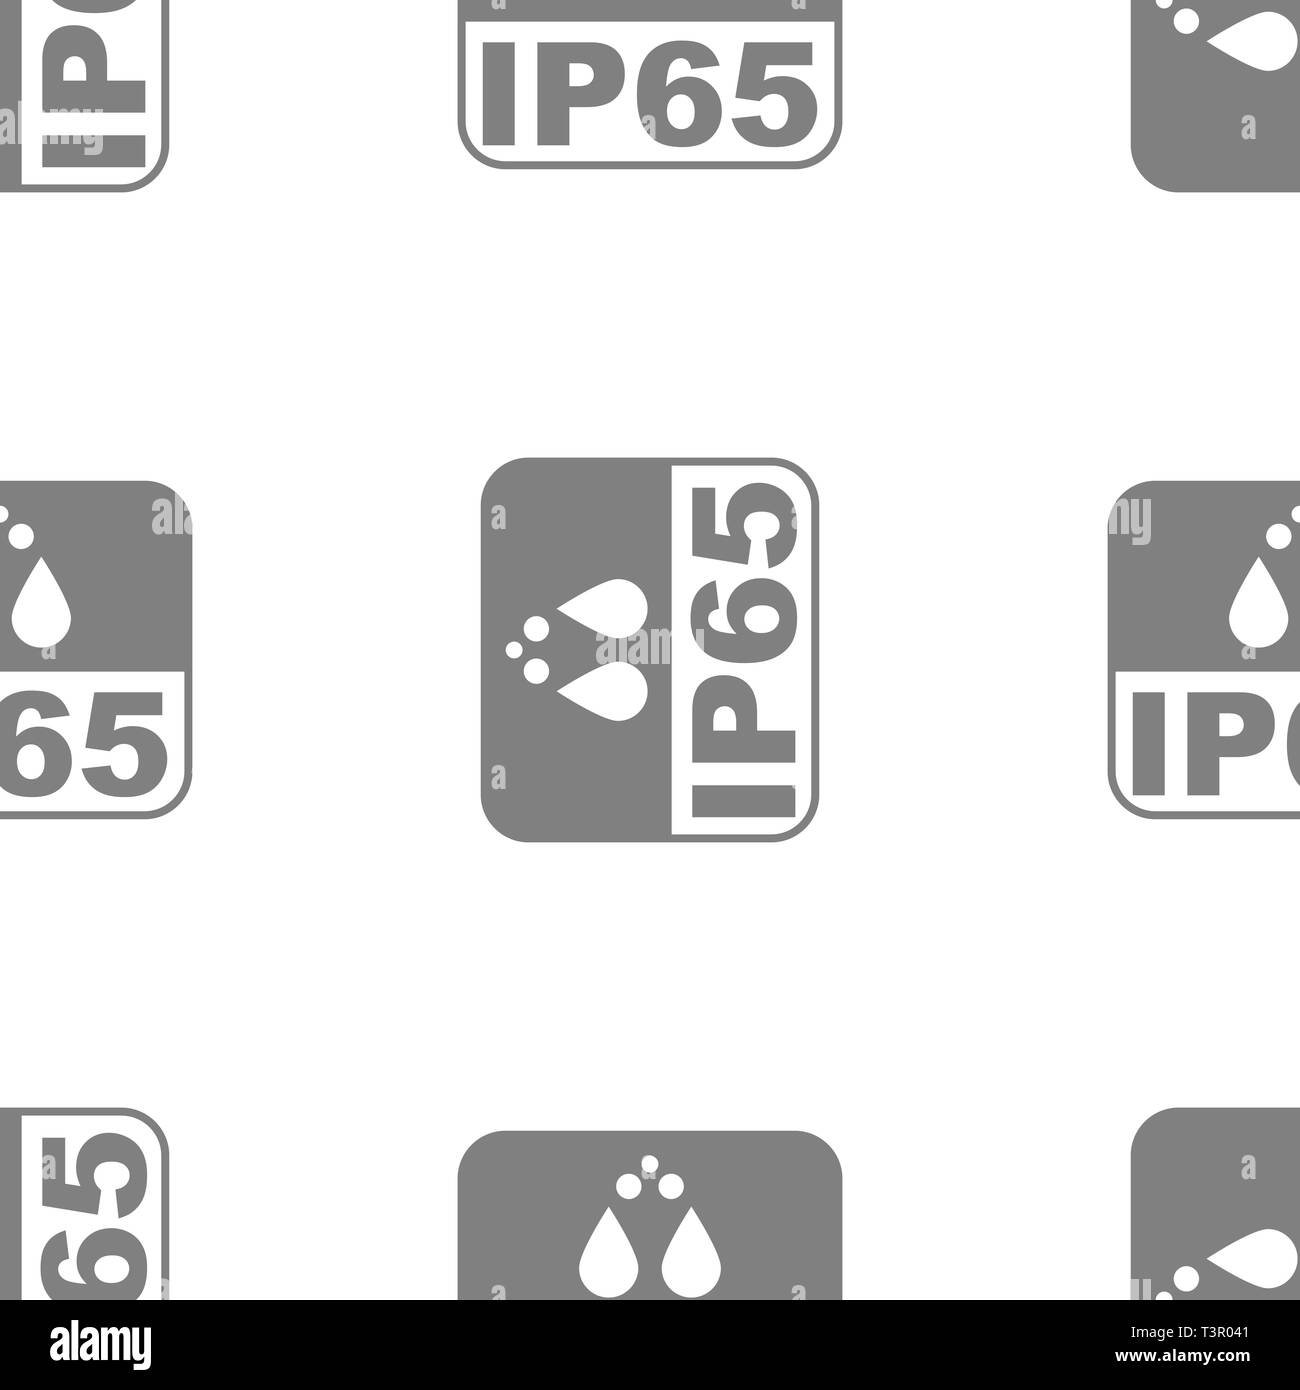 IP65 protection certificate standard icon seamless. Water and dust or solids resistant protected symbol. Vector illustration. - Stock Image